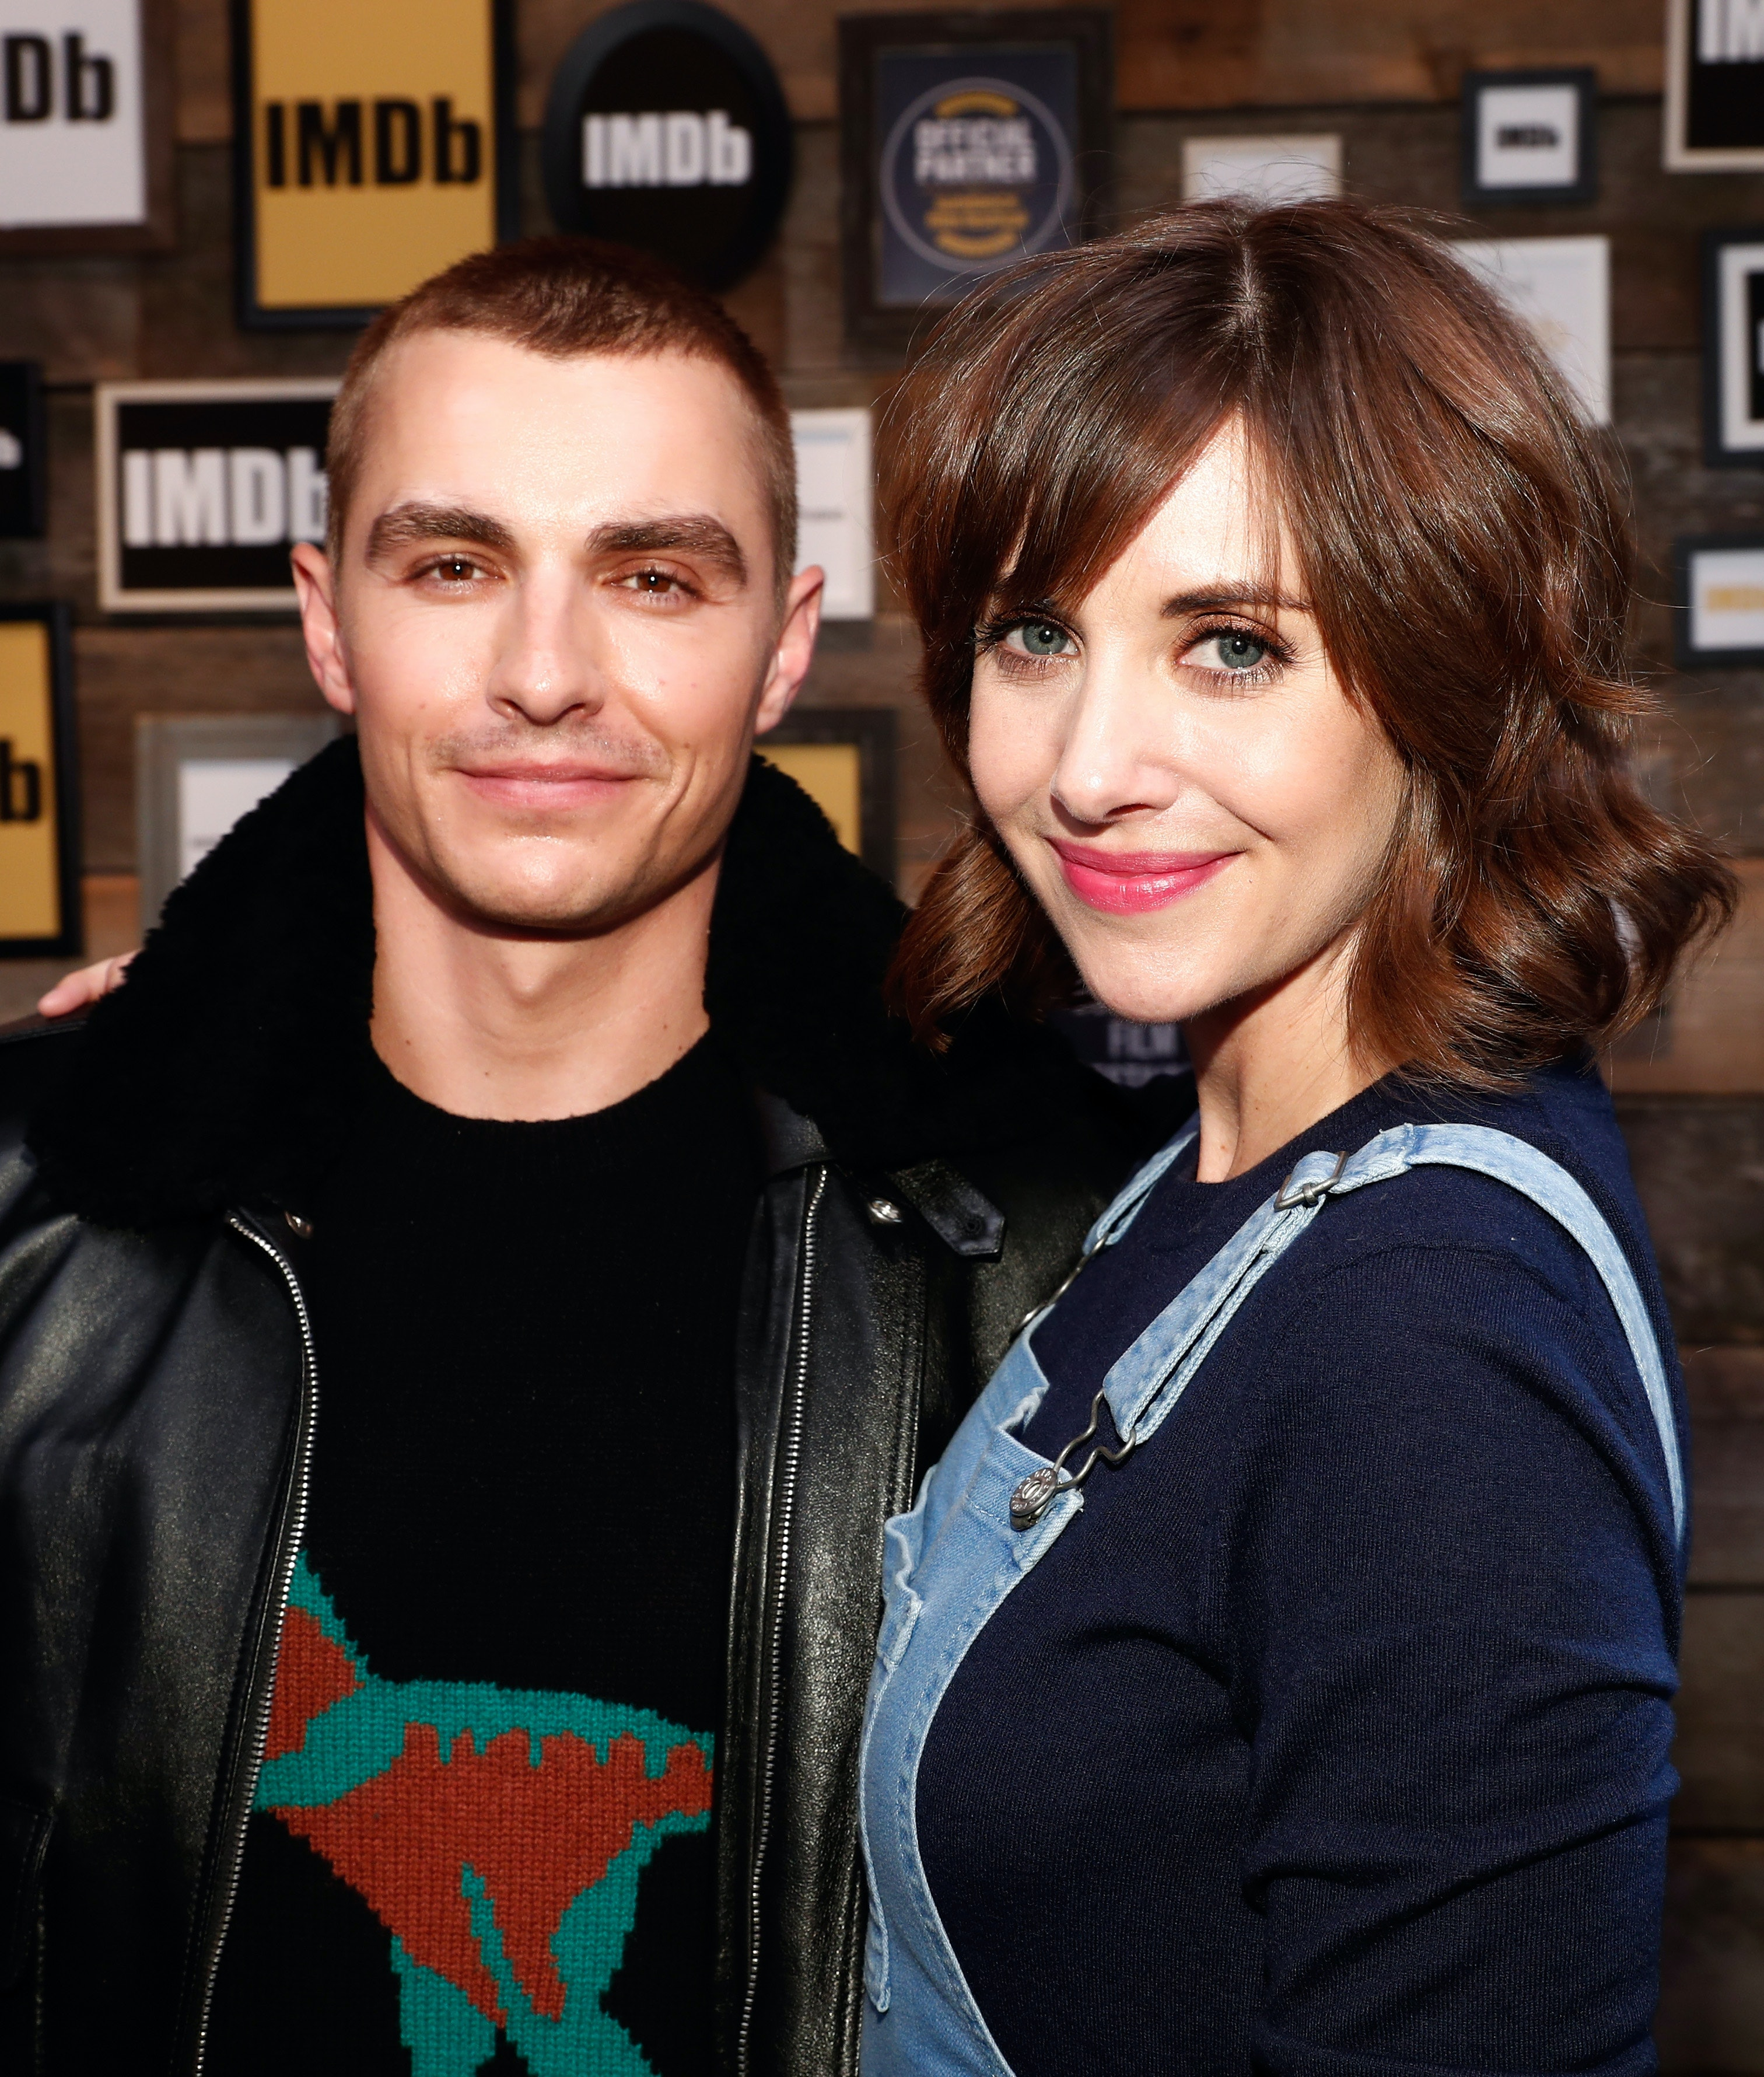 Dave Franco and Mad Men's Alison Brie tie the knot in secret